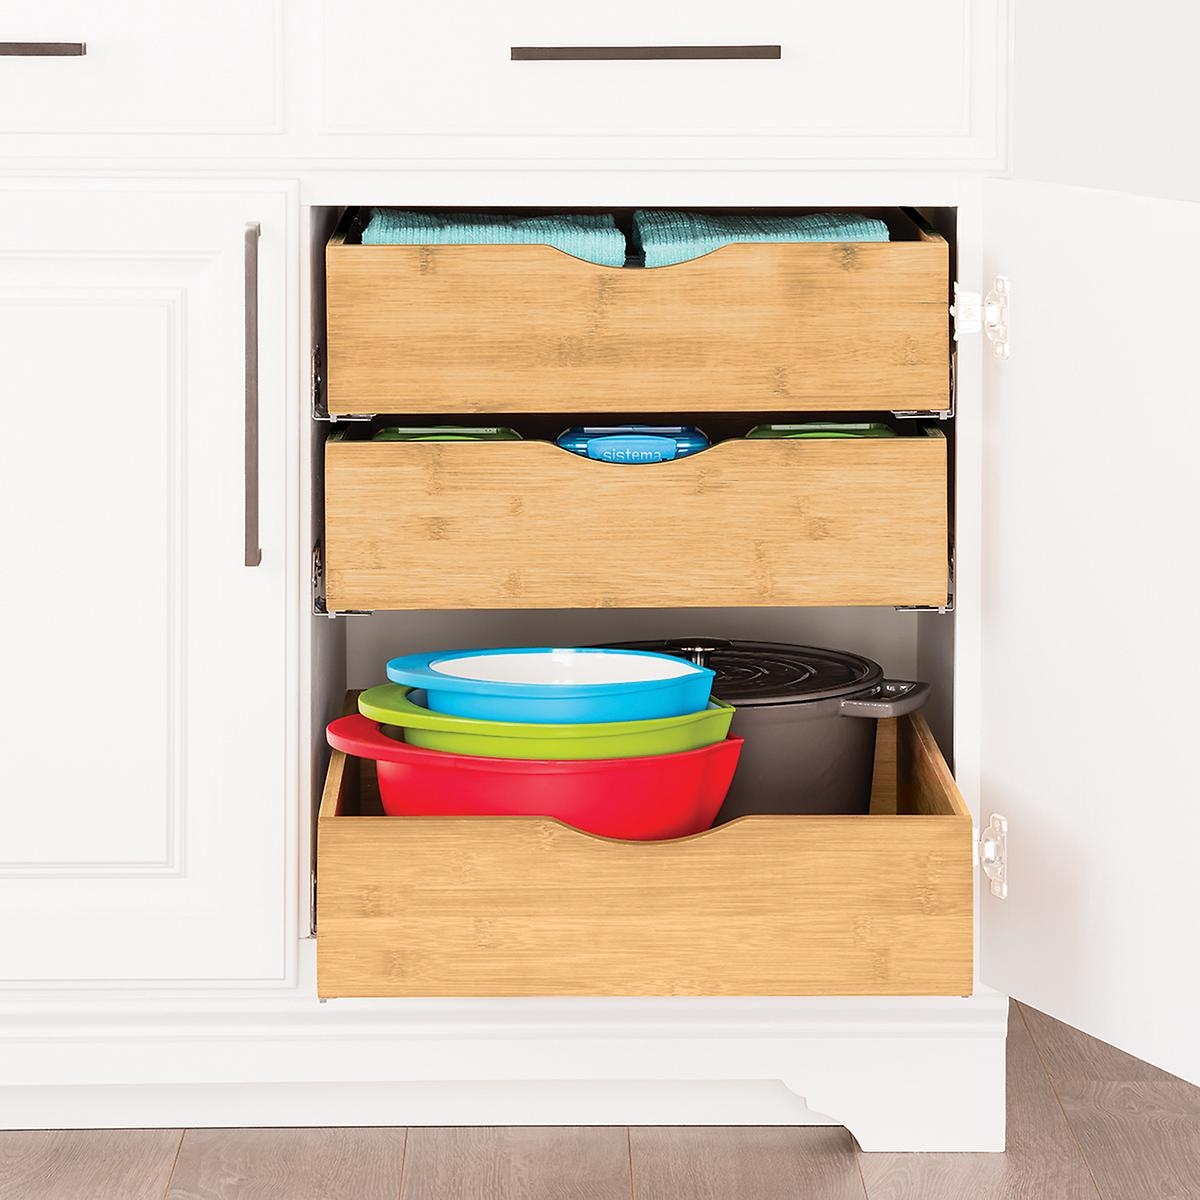 Slide Out Closet Shelves: 24 Smart Organizing Ideas For Your Kitchen